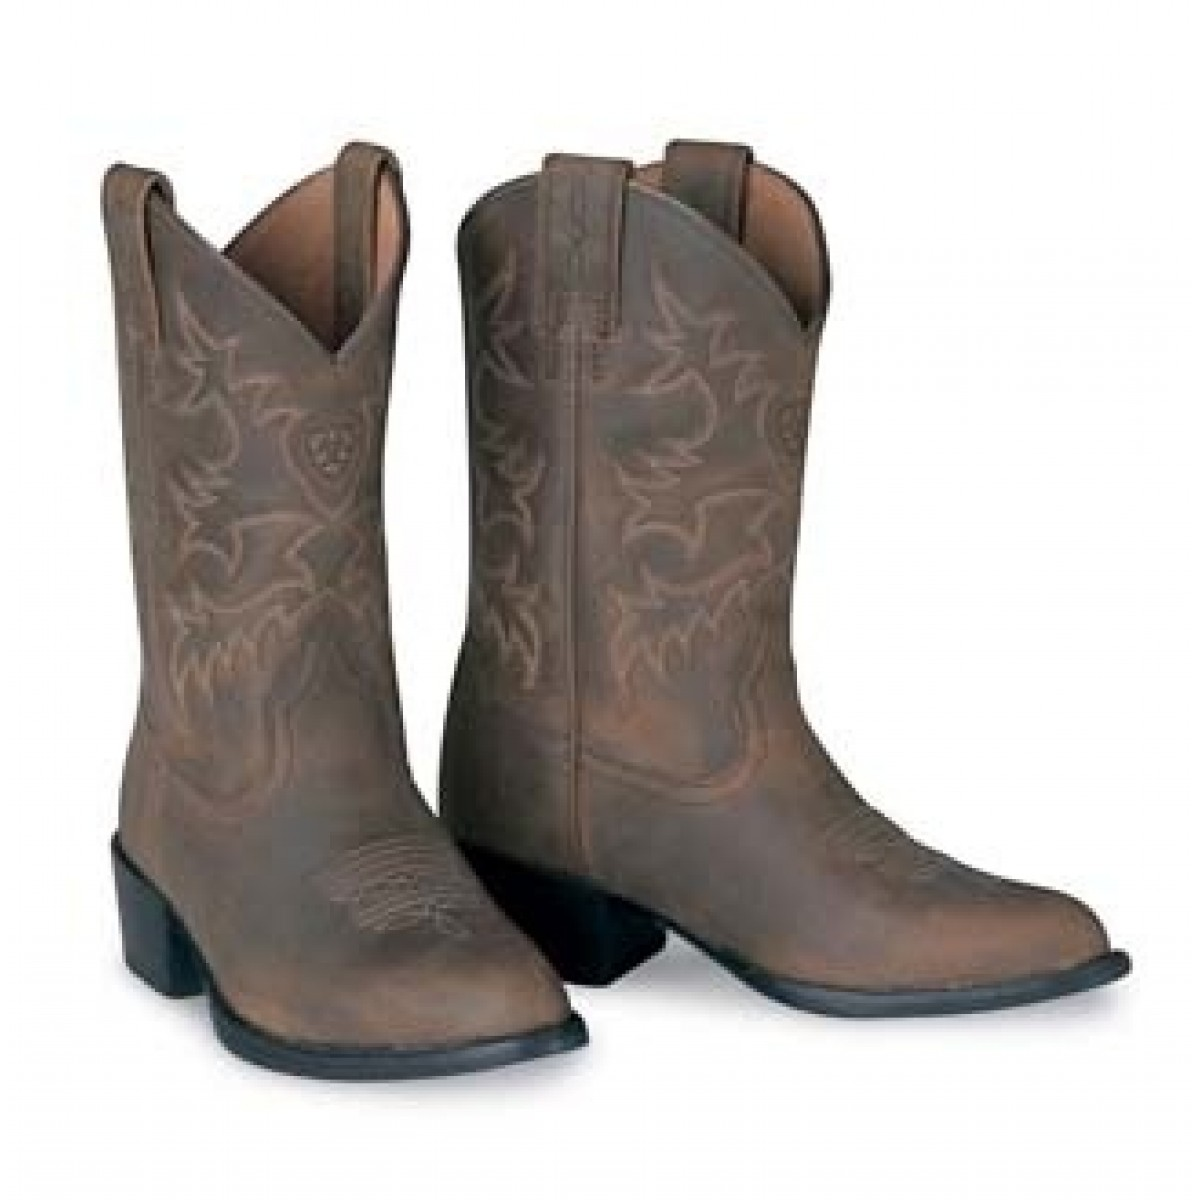 Ariat Childrens Boots - Boot Yc